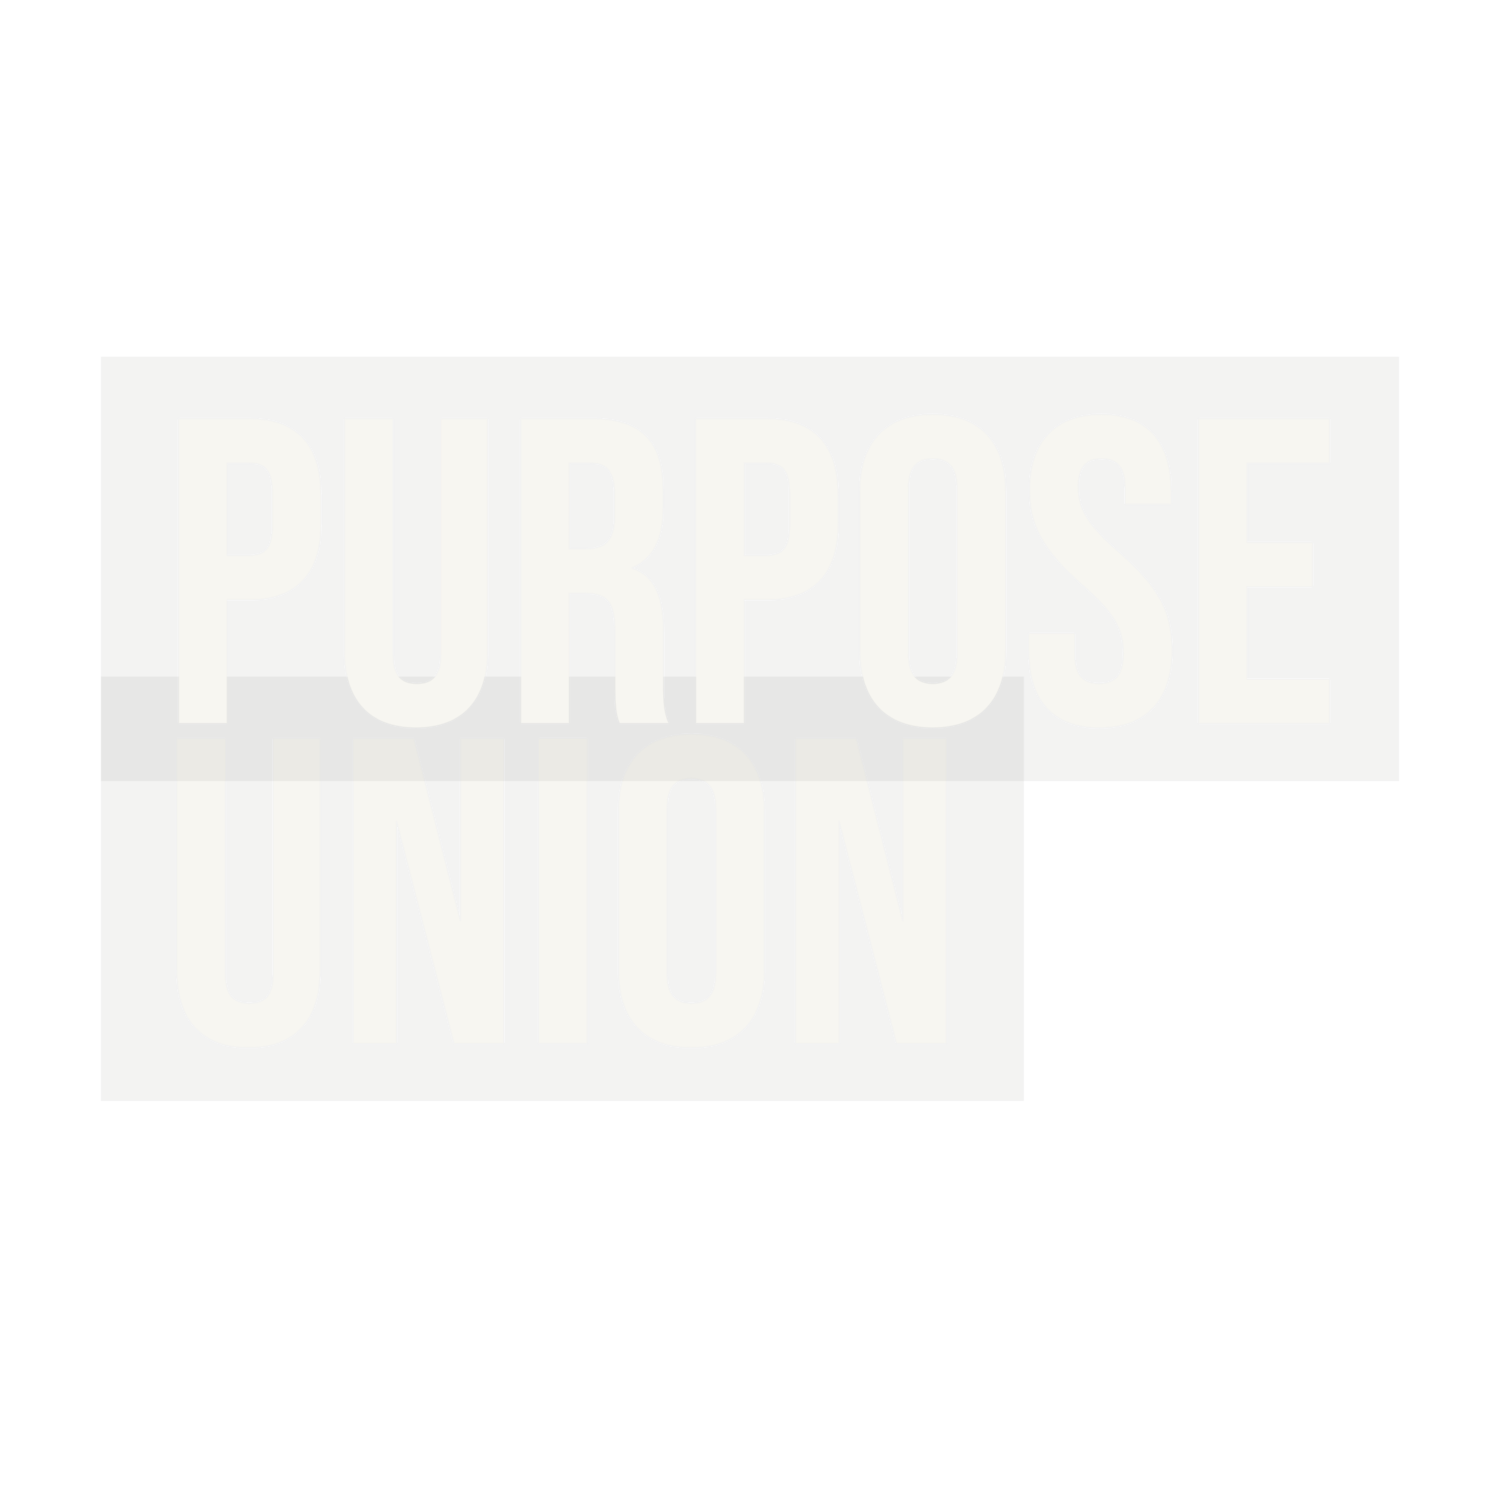 Purpose Union